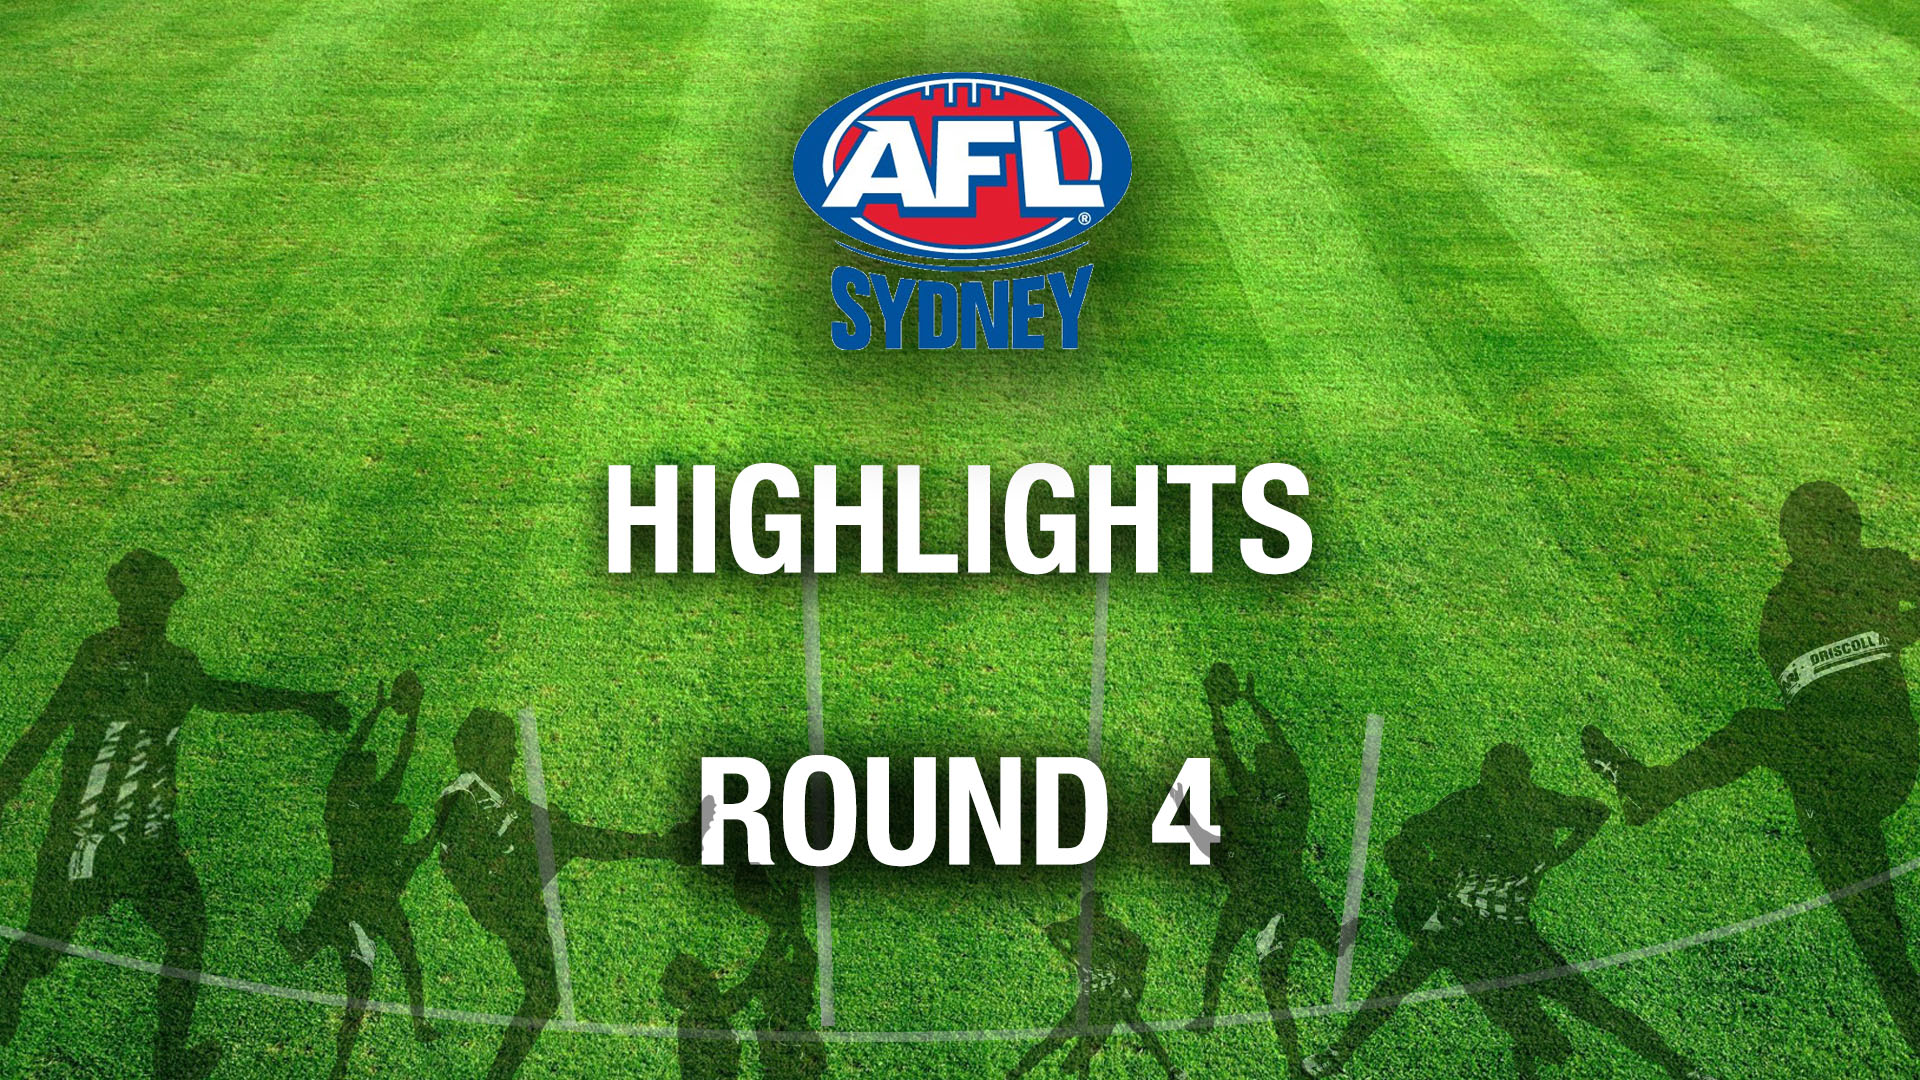 AFL SYDNEY 2018 RD4 HIGHLIGHTS